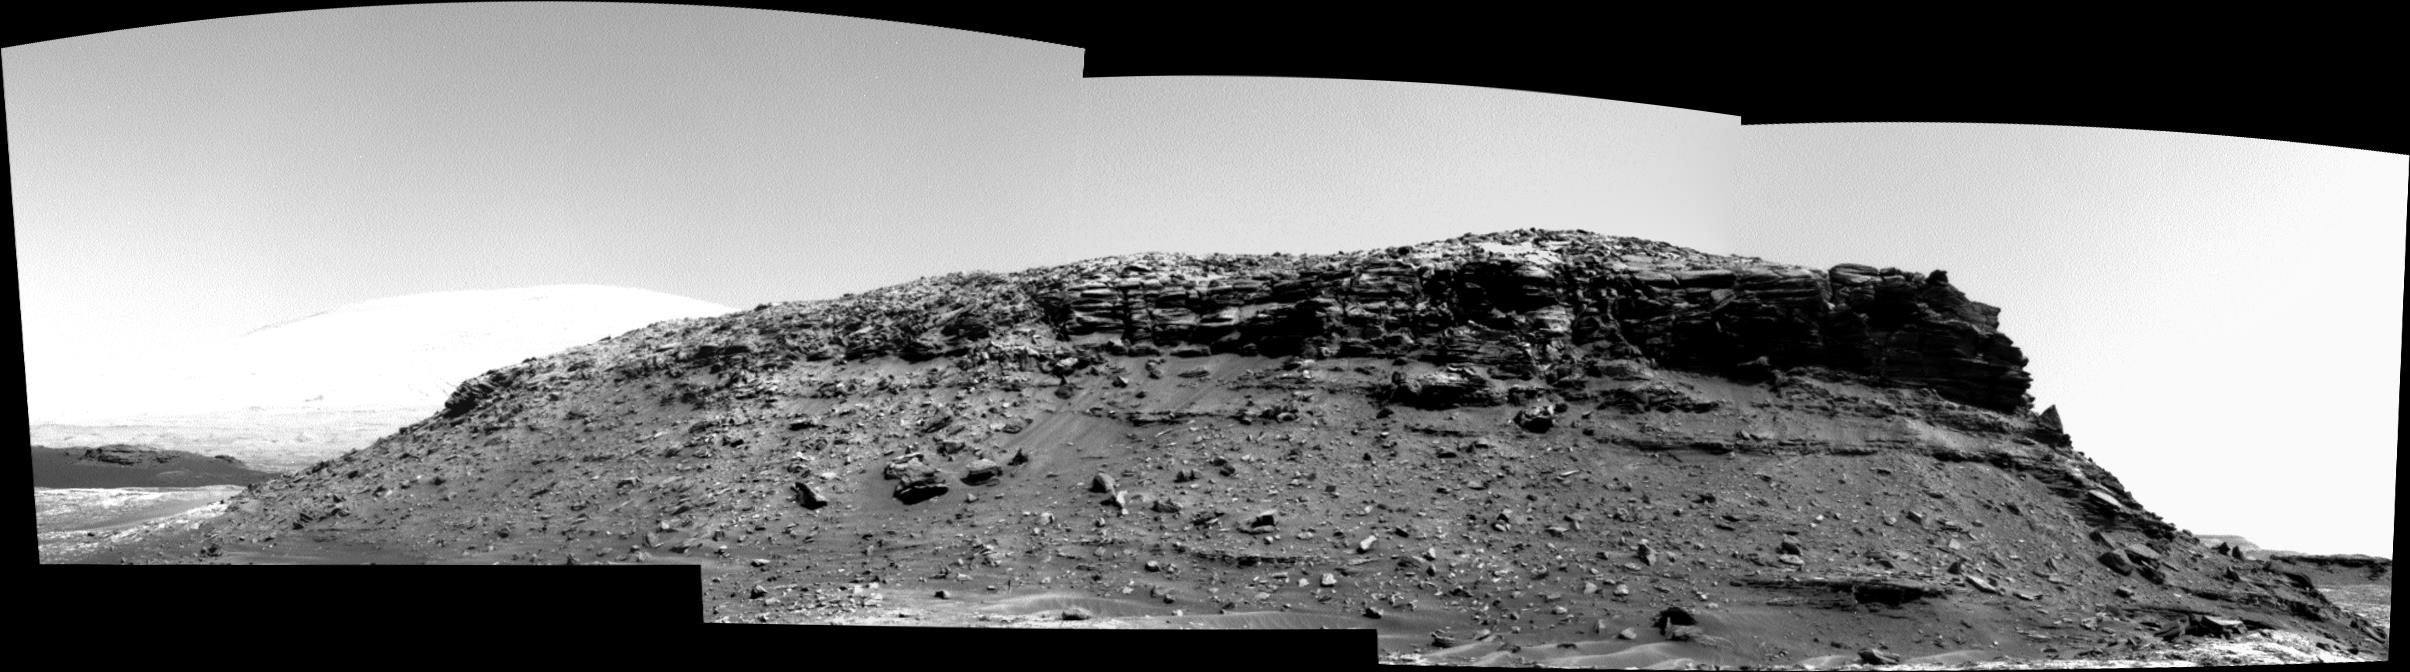 panoramic curiosity rover b&w view 1 - sol 1428 - was life on mars